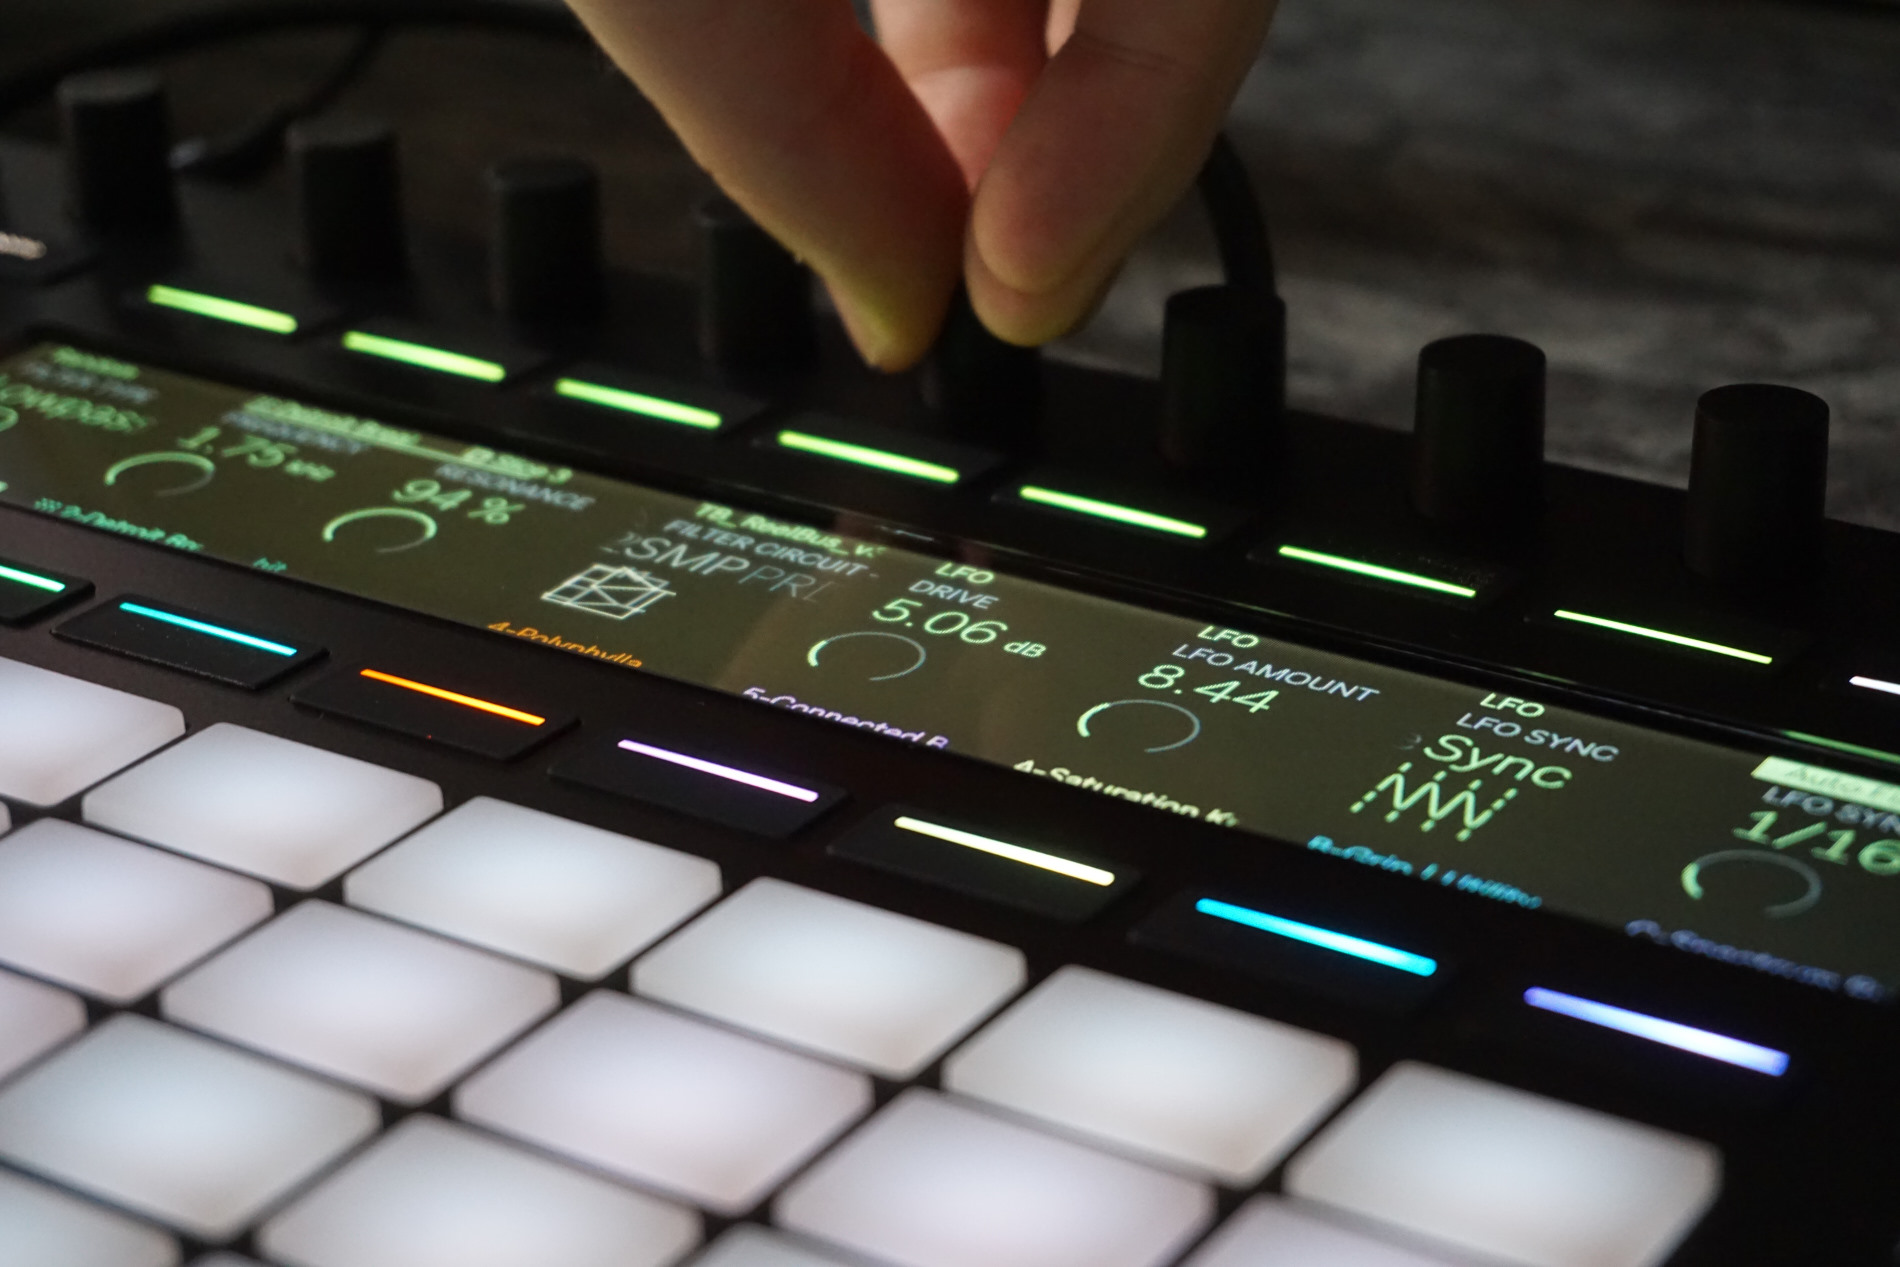 Ableton have now made it easy for any developer to work with Push 2